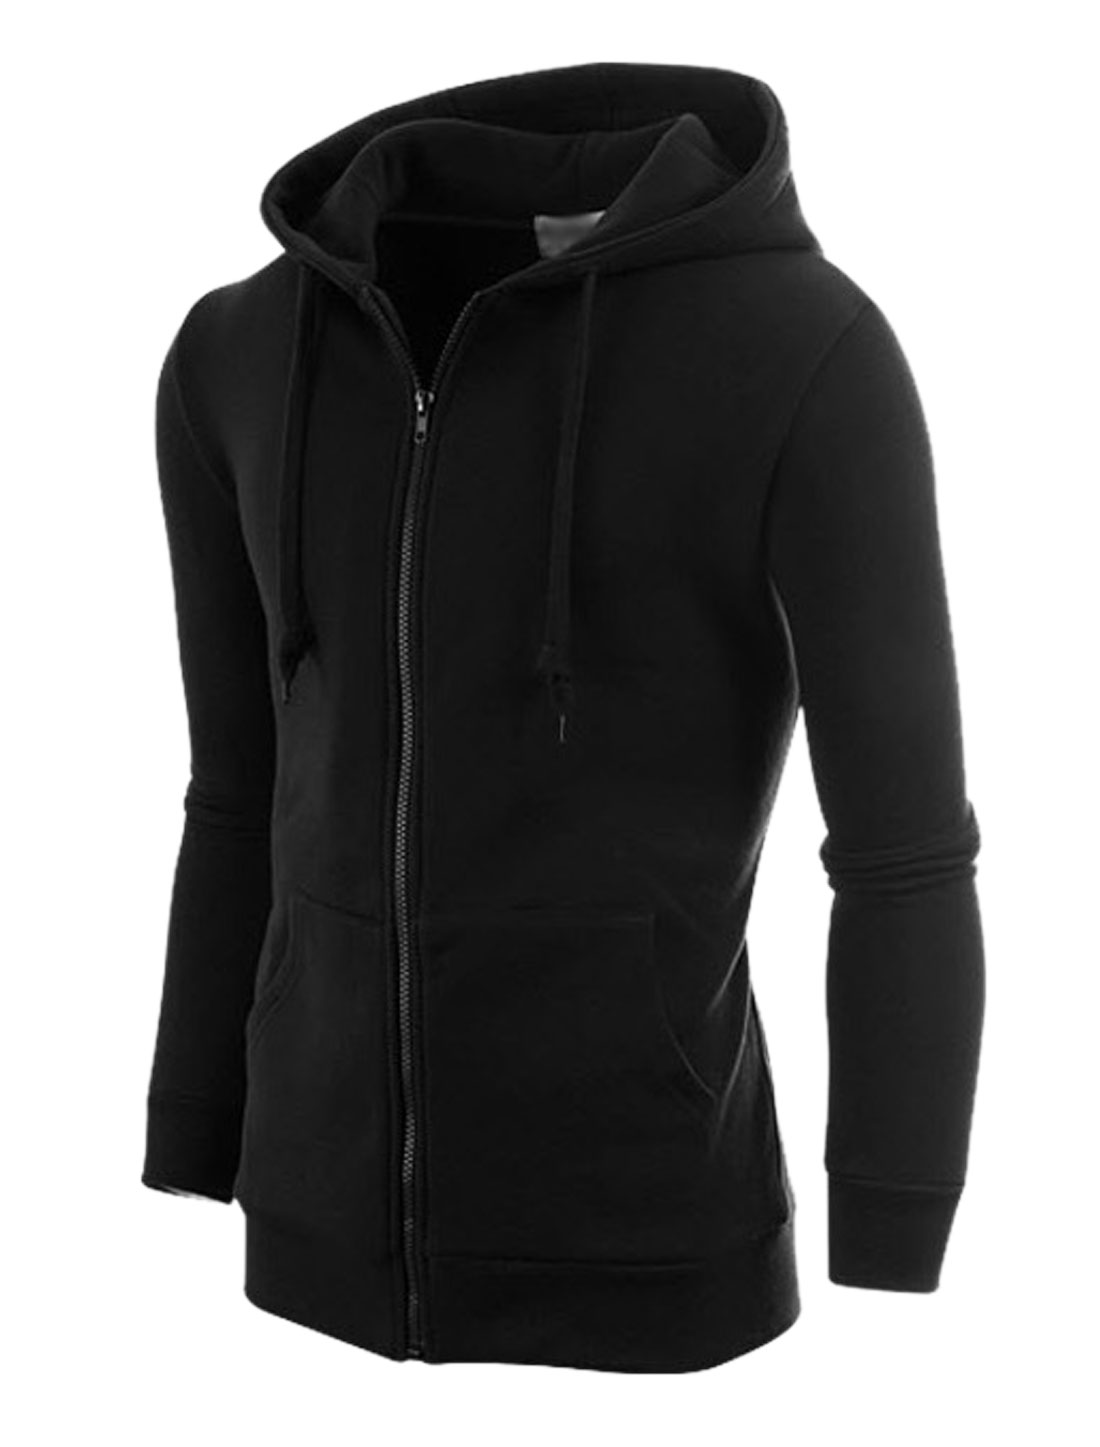 Men Black Zip Up Front Pockets Drawstring Ribbed Trim Hoodie Jacket M